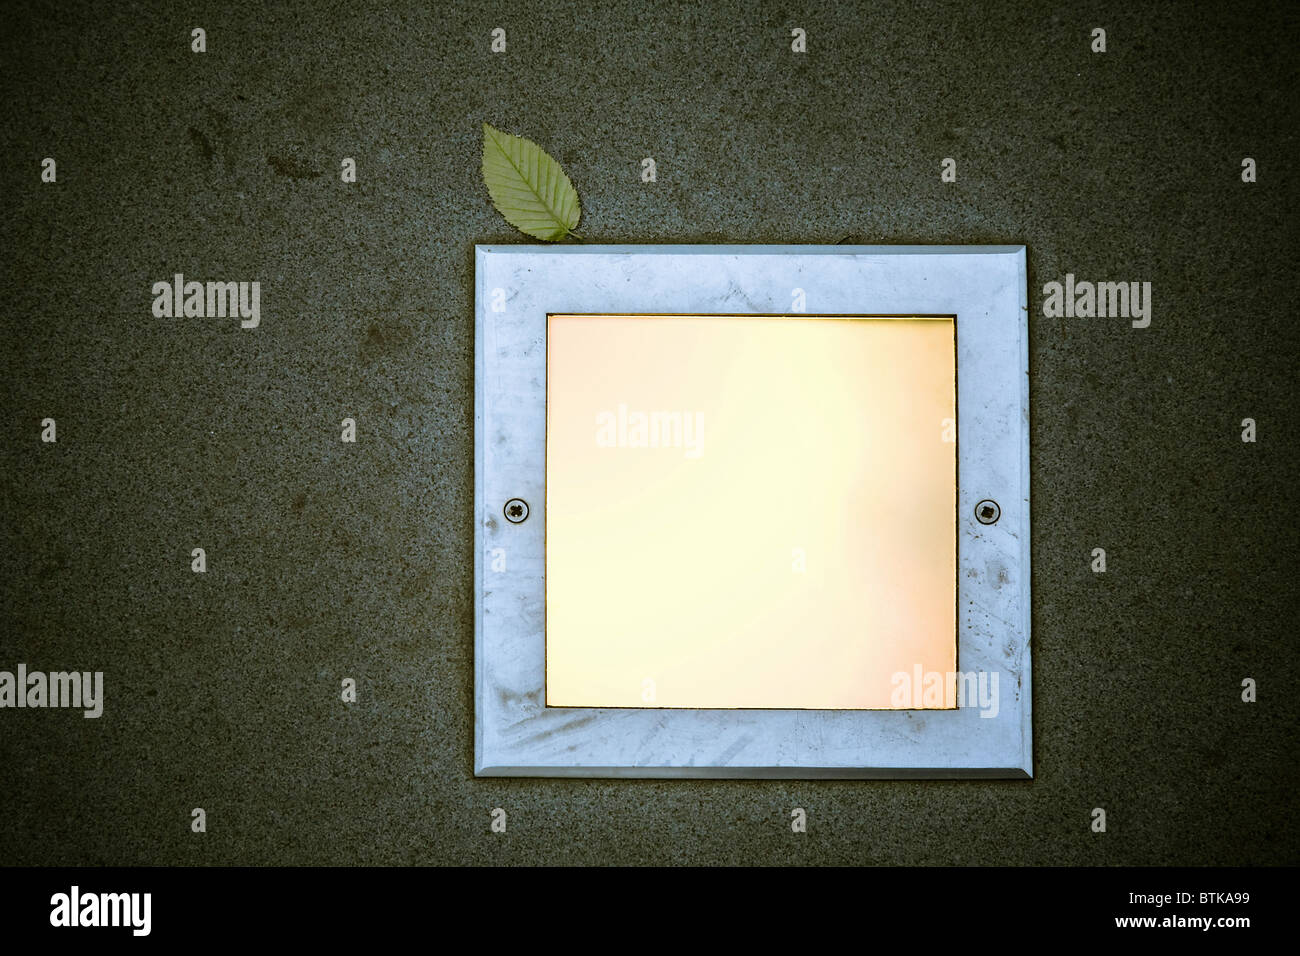 ground light and green leaf - Stock Image